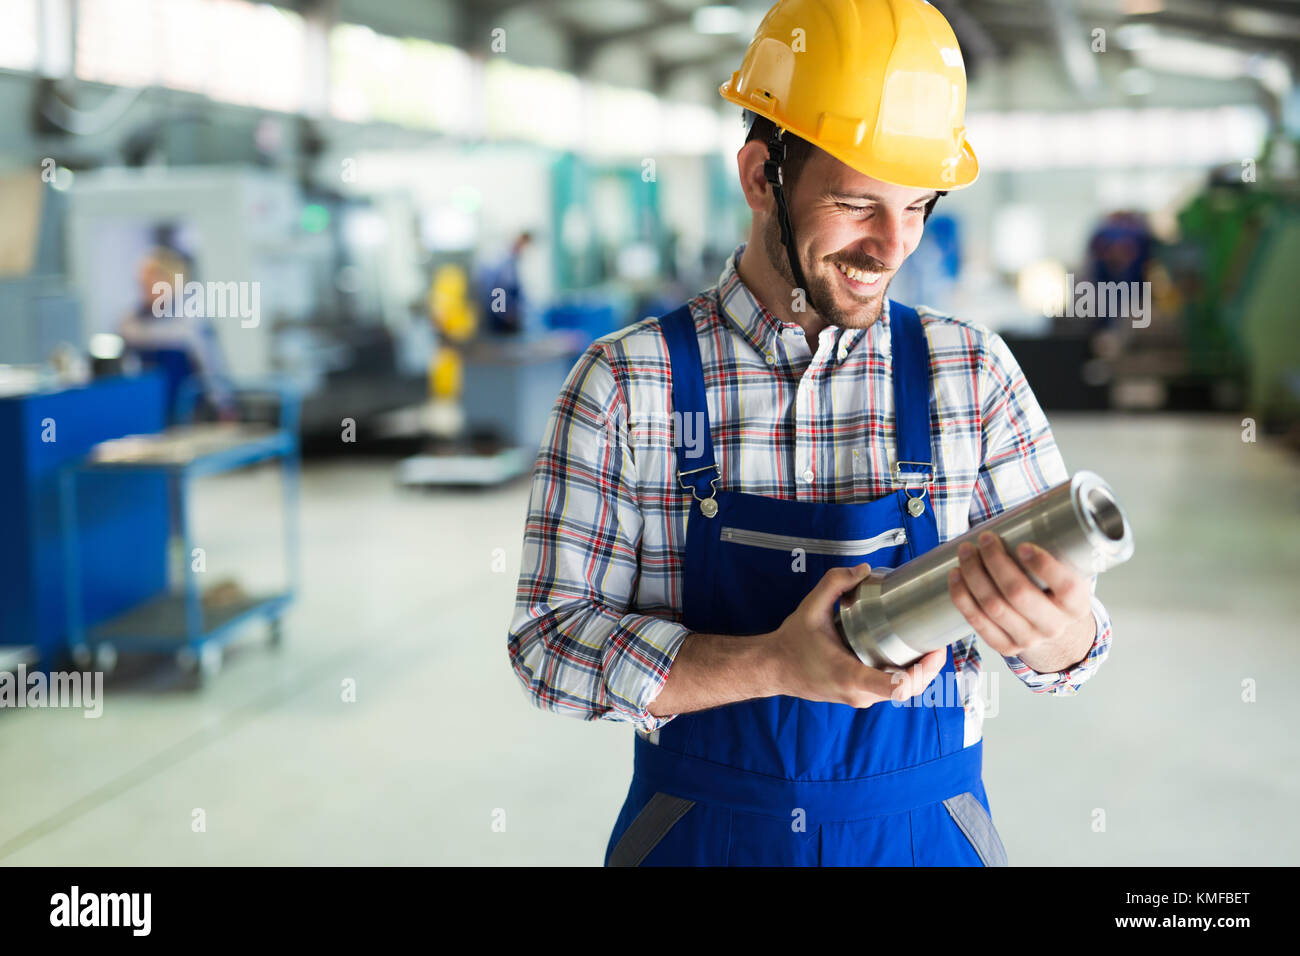 Portrait of an metal engineer working at factory - Stock Image